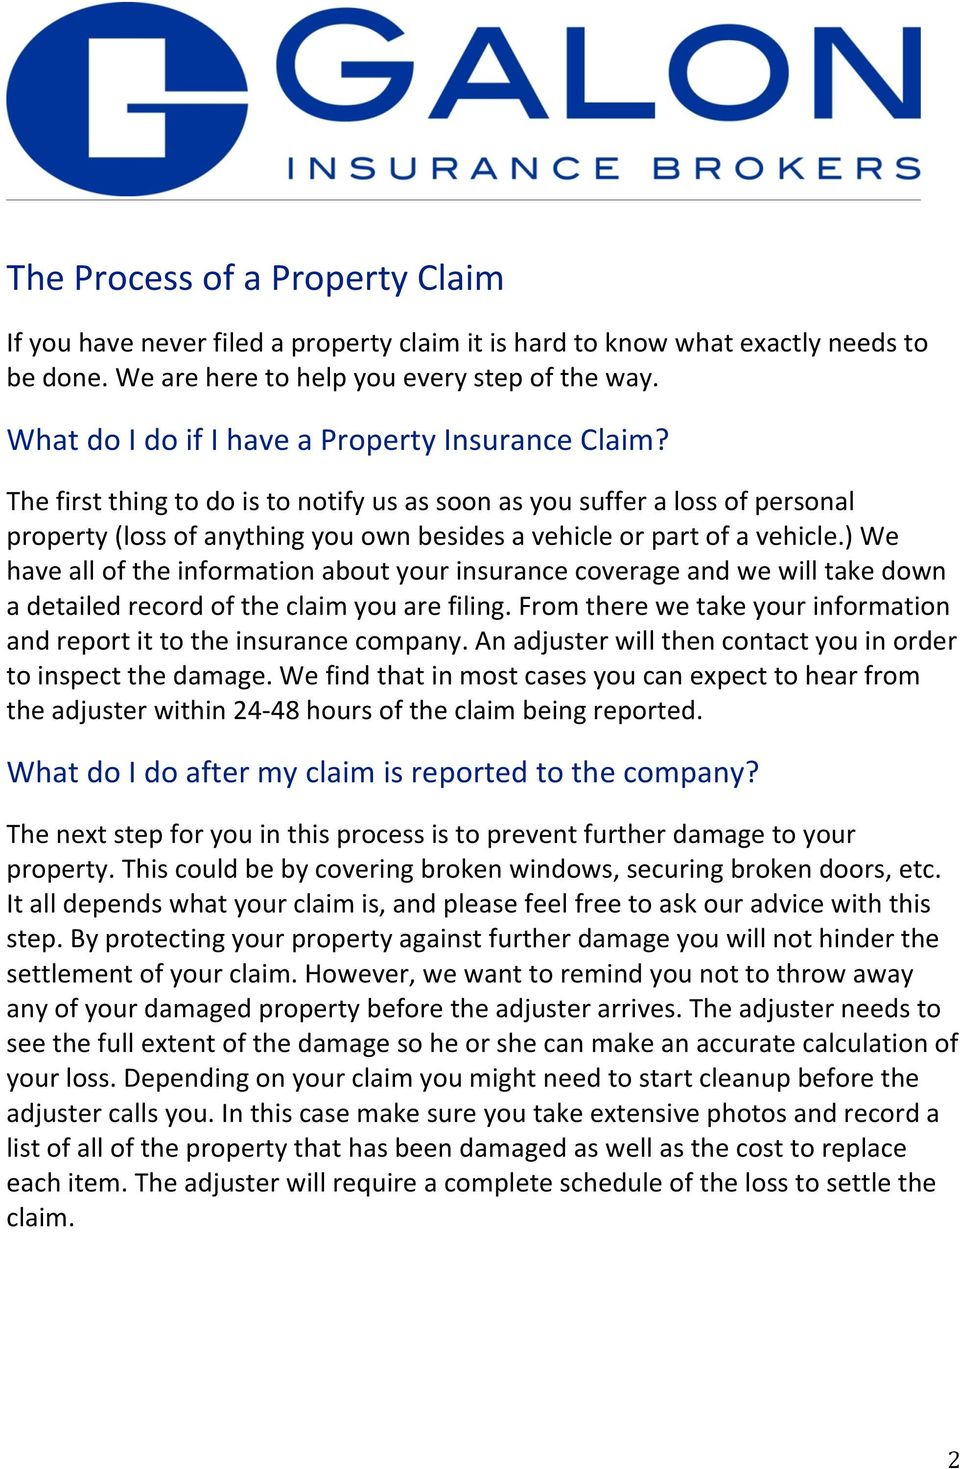 The first thing to do is to notify us as soon as you suffer a loss of personal property (loss of anything you own besides a vehicle or part of a vehicle.